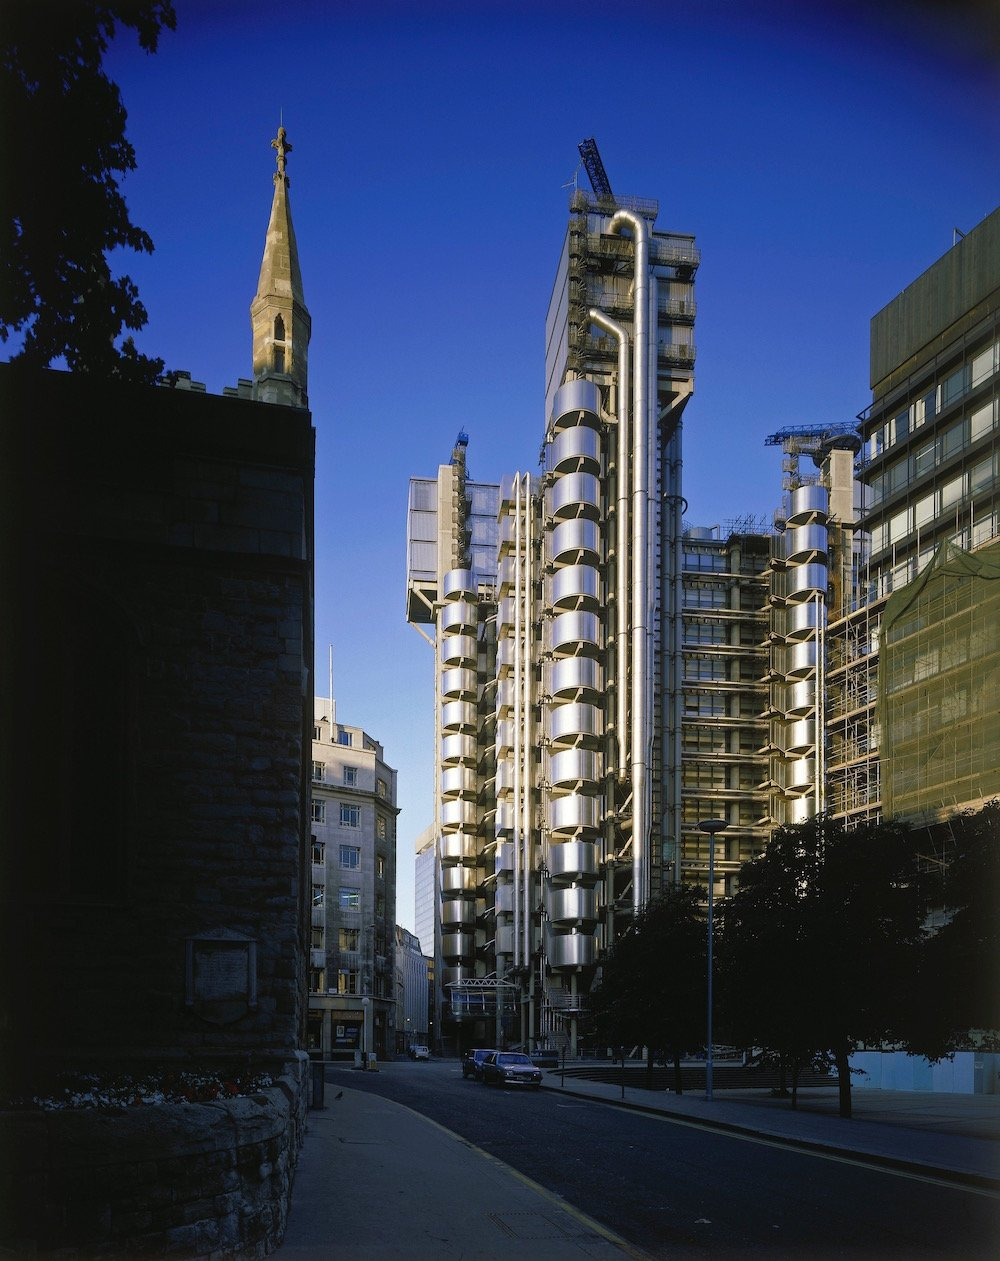 Lloyd's of London, with the steeple of St Andrew Undershaft to the left, photographer Richard Bryant © Arcaid Images